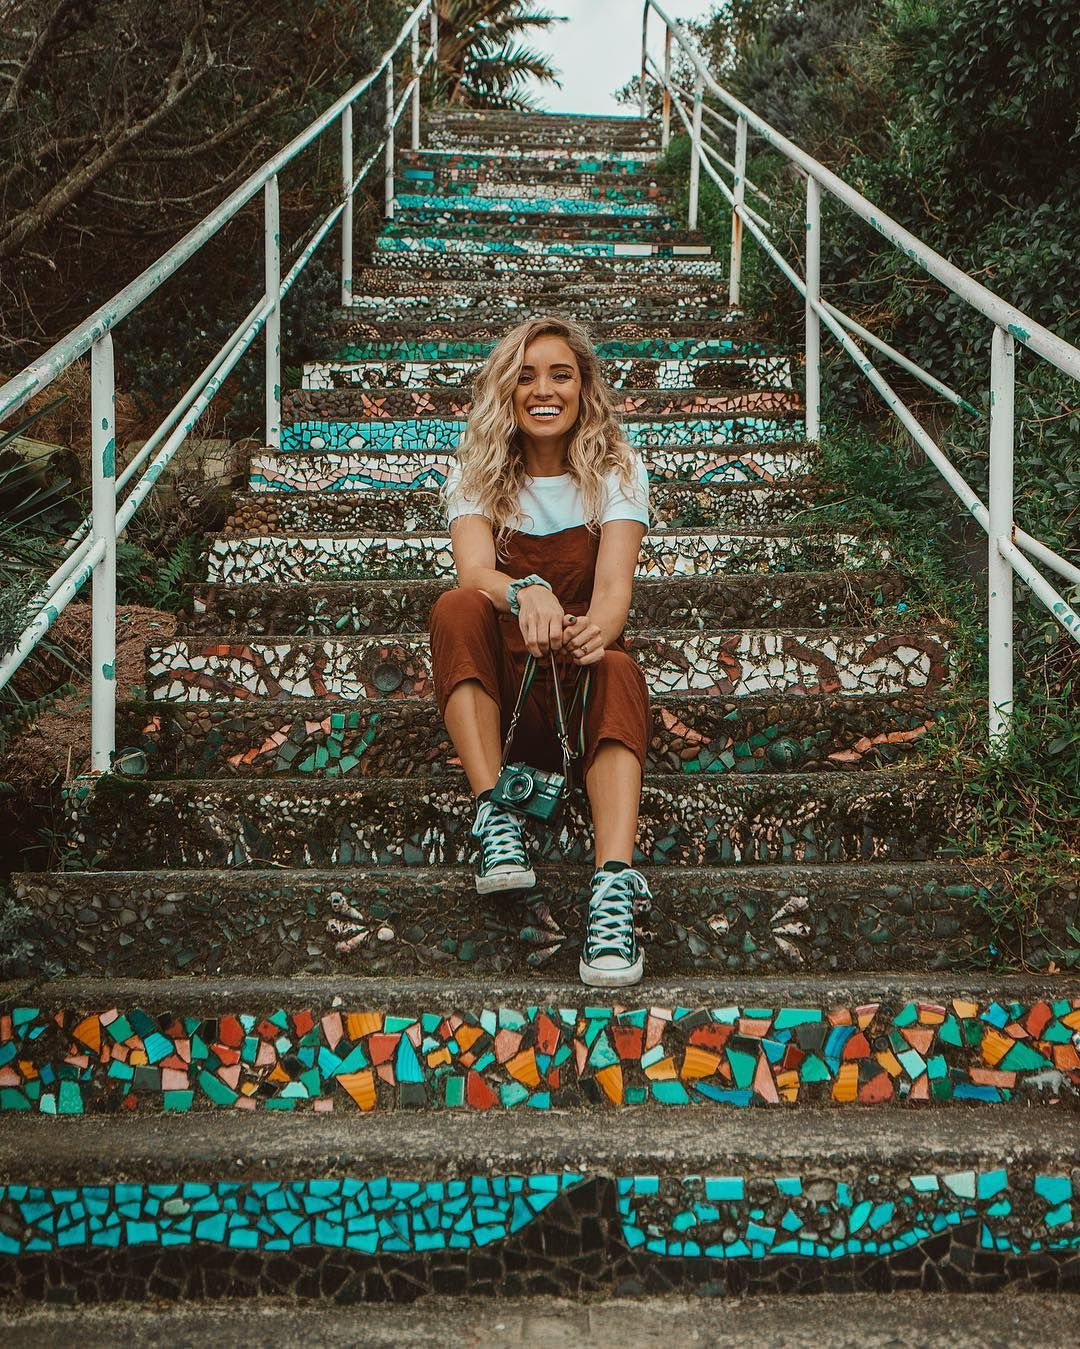 "Hailey Miller on Instagram: ""found these really cool steps covered in old mosaic tiles + seashells when we were on a long walk along the coast in sydney ☺️????????"" #granolagirlaesthetic"